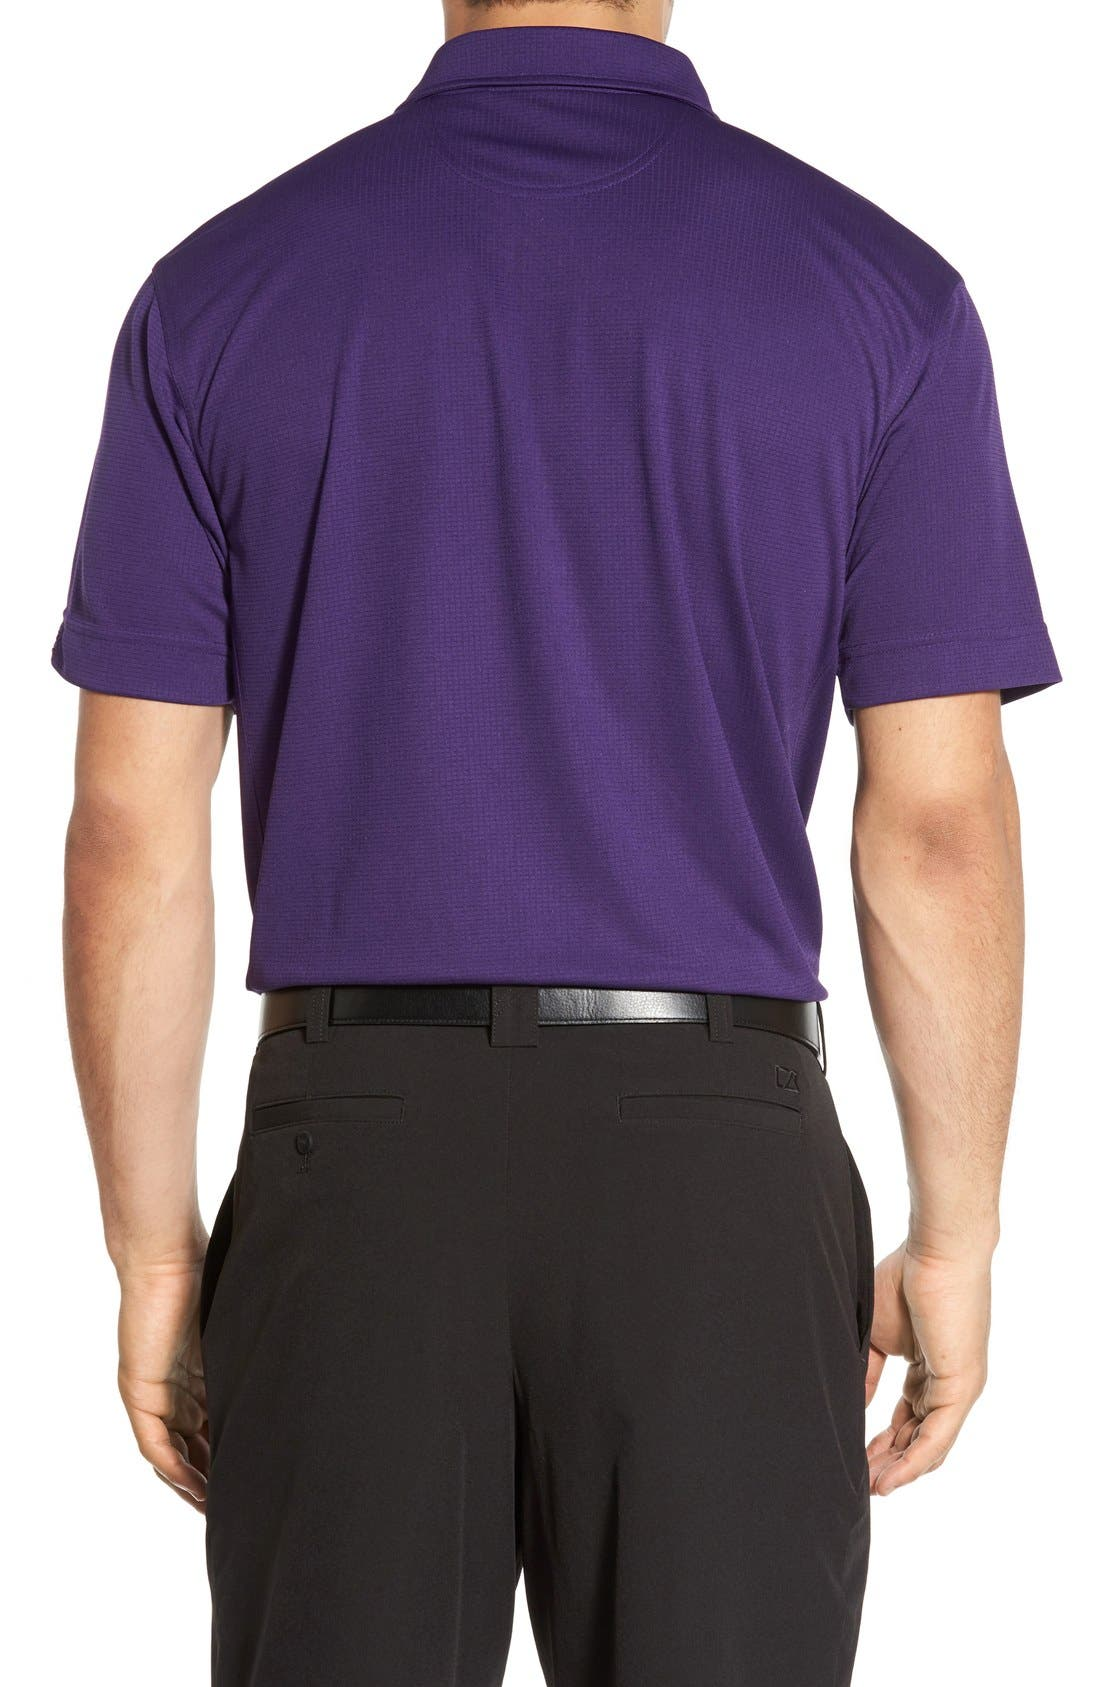 'Genre' DryTec Moisture Wicking Polo,                             Alternate thumbnail 3, color,                             COLLEGE PURPLE